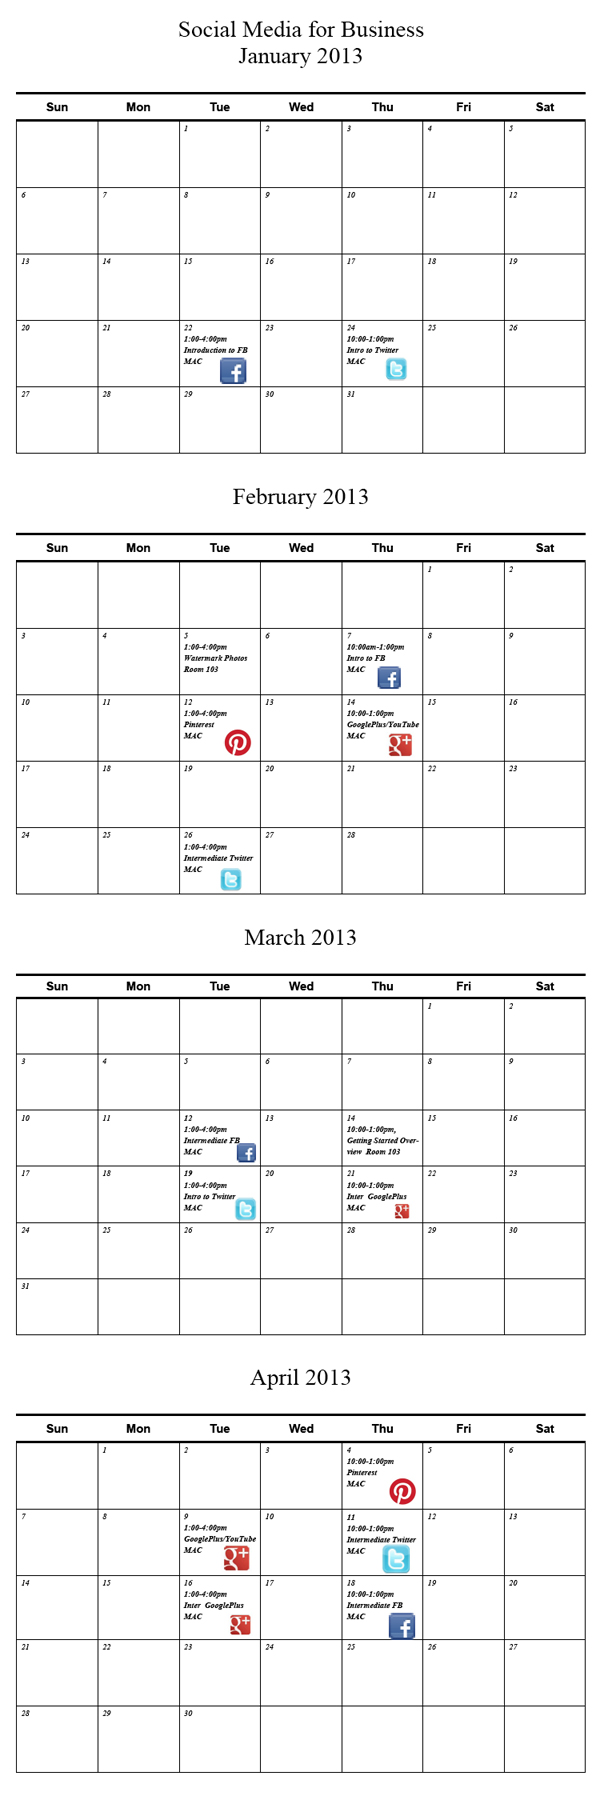 Calendar for Jan - April Linda Sherman Social Media for Biz classes